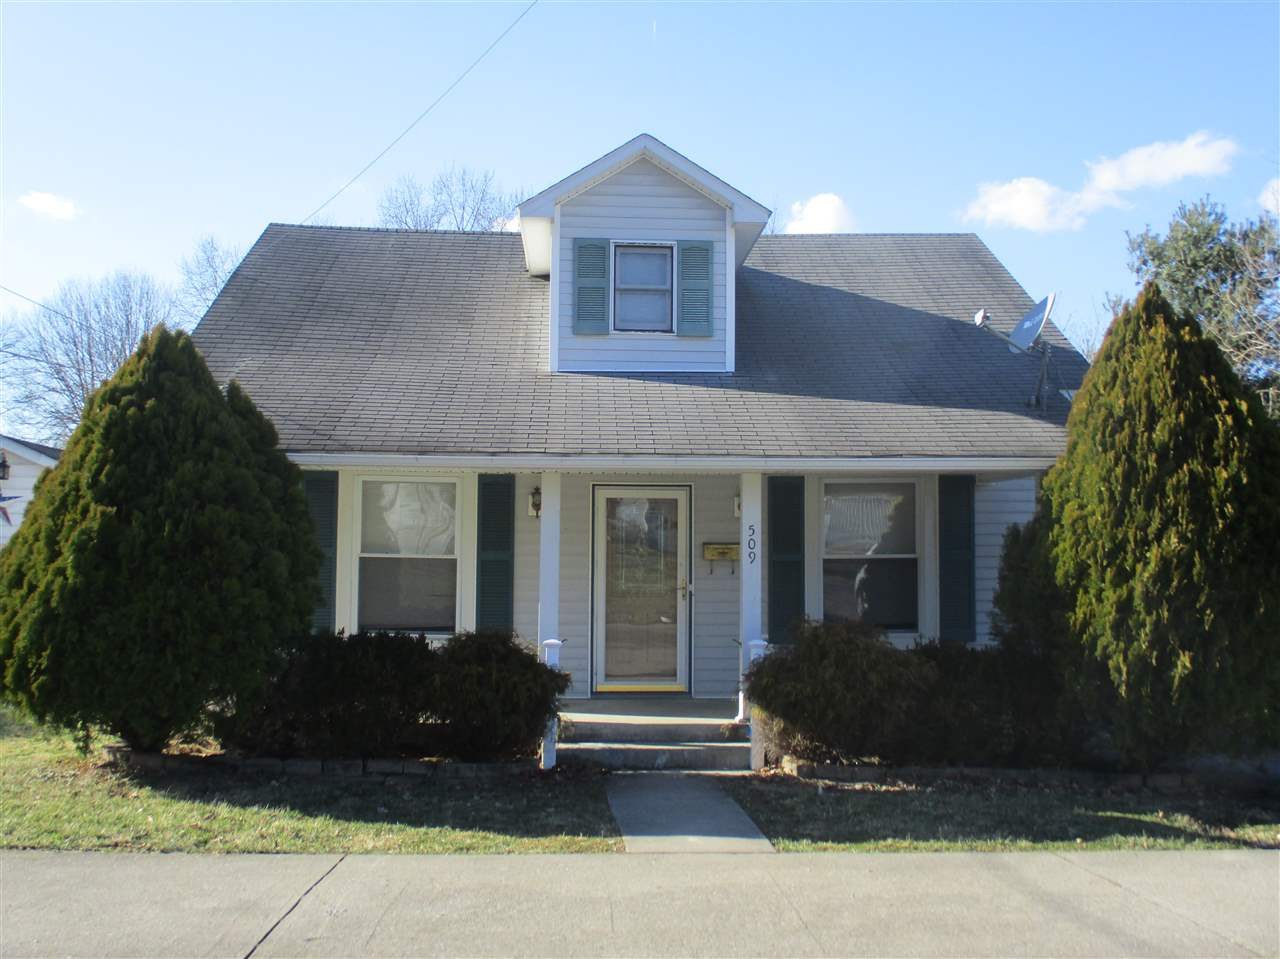 Photo 1 for 509 Beech St Falmouth, KY 41040